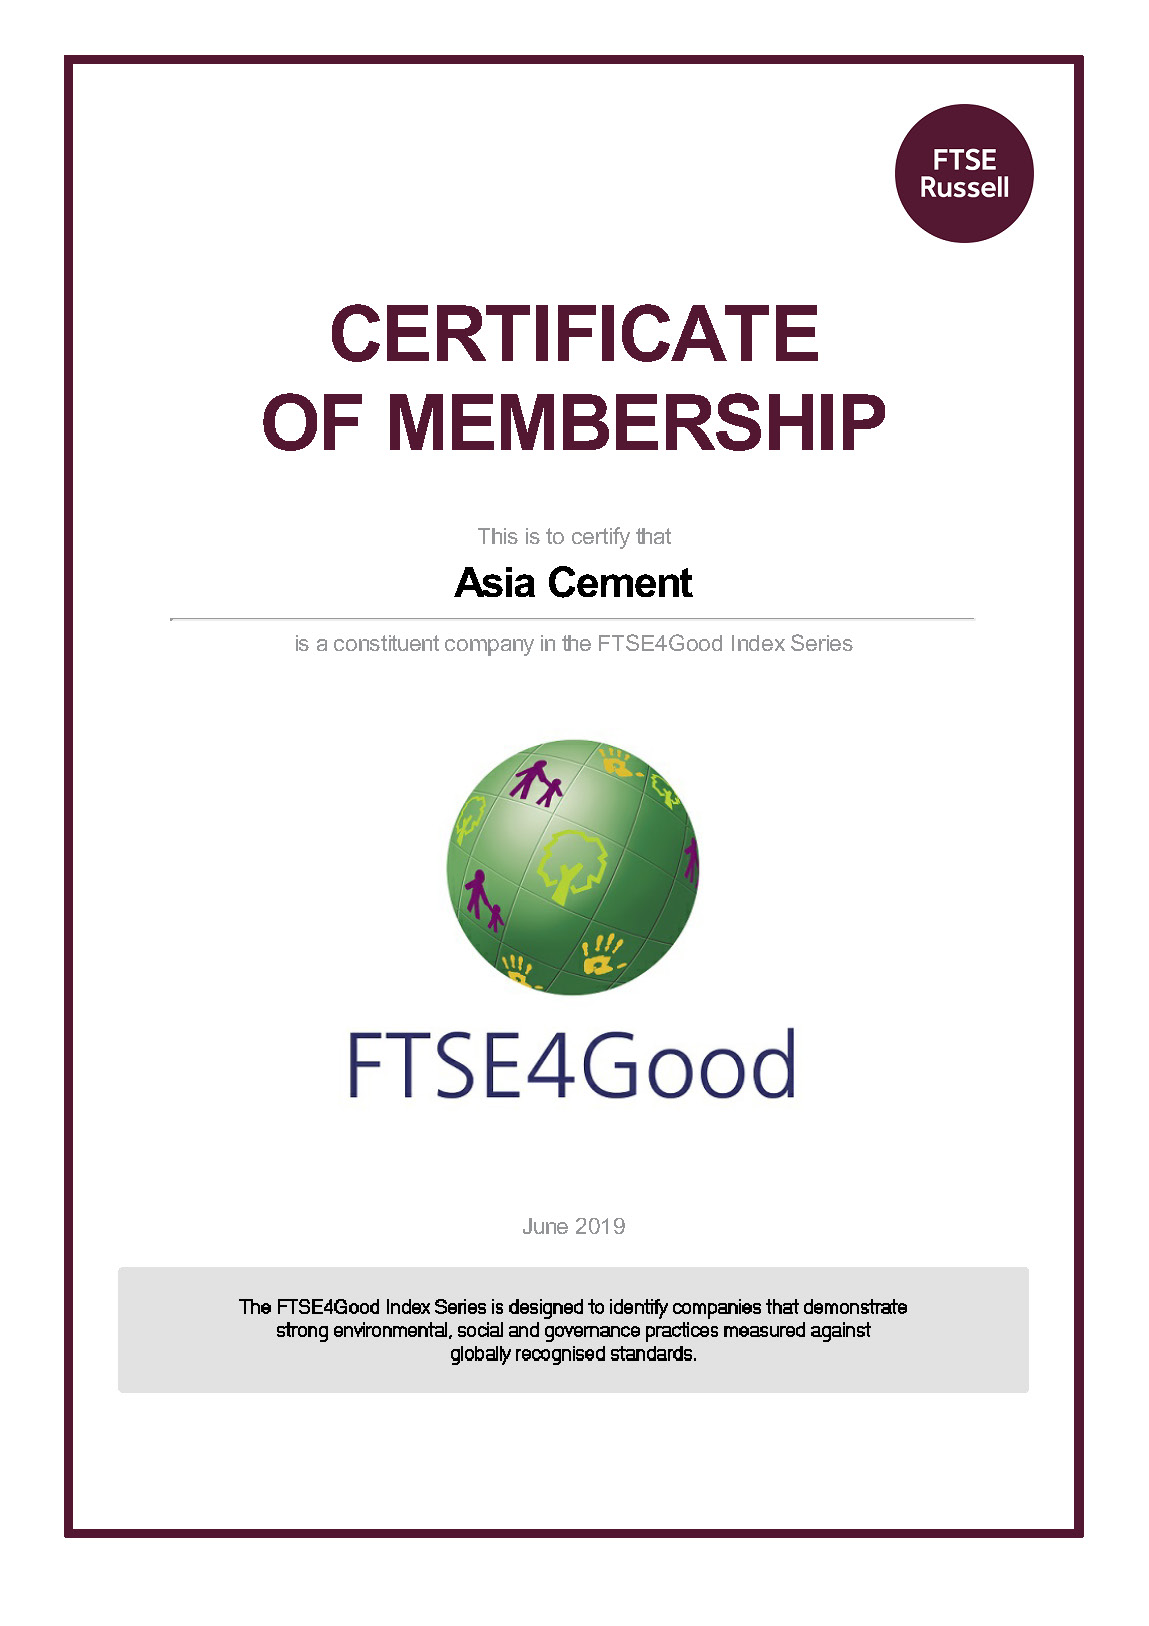 20190730 Asia Cement FTSE4Good Certificate